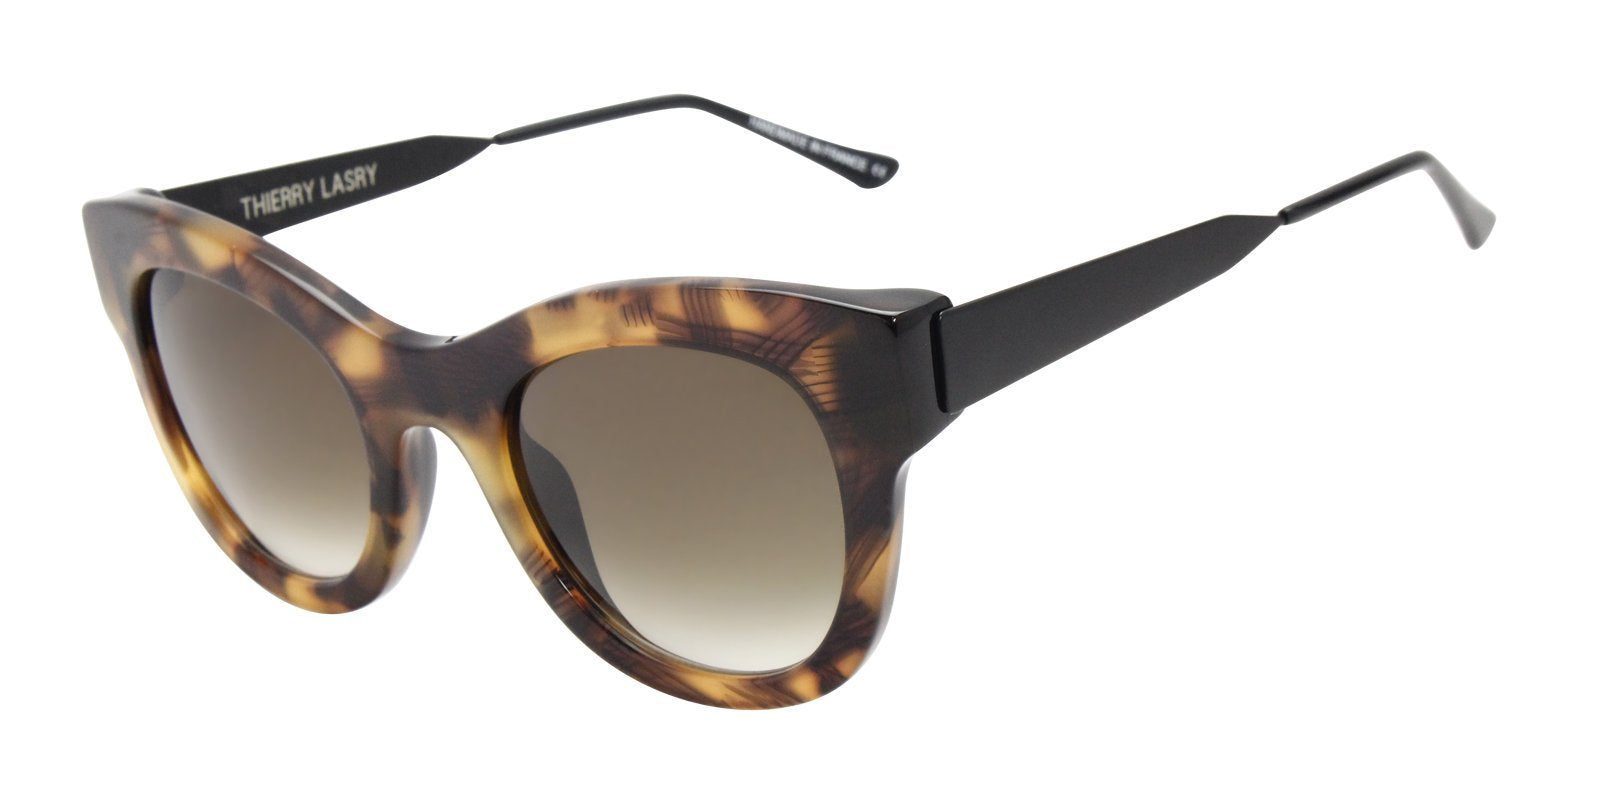 Thierry Lasry - Leggy Tortoise Oval Women Sunglasses - 52mm-Sunglasses-Designer Eyes